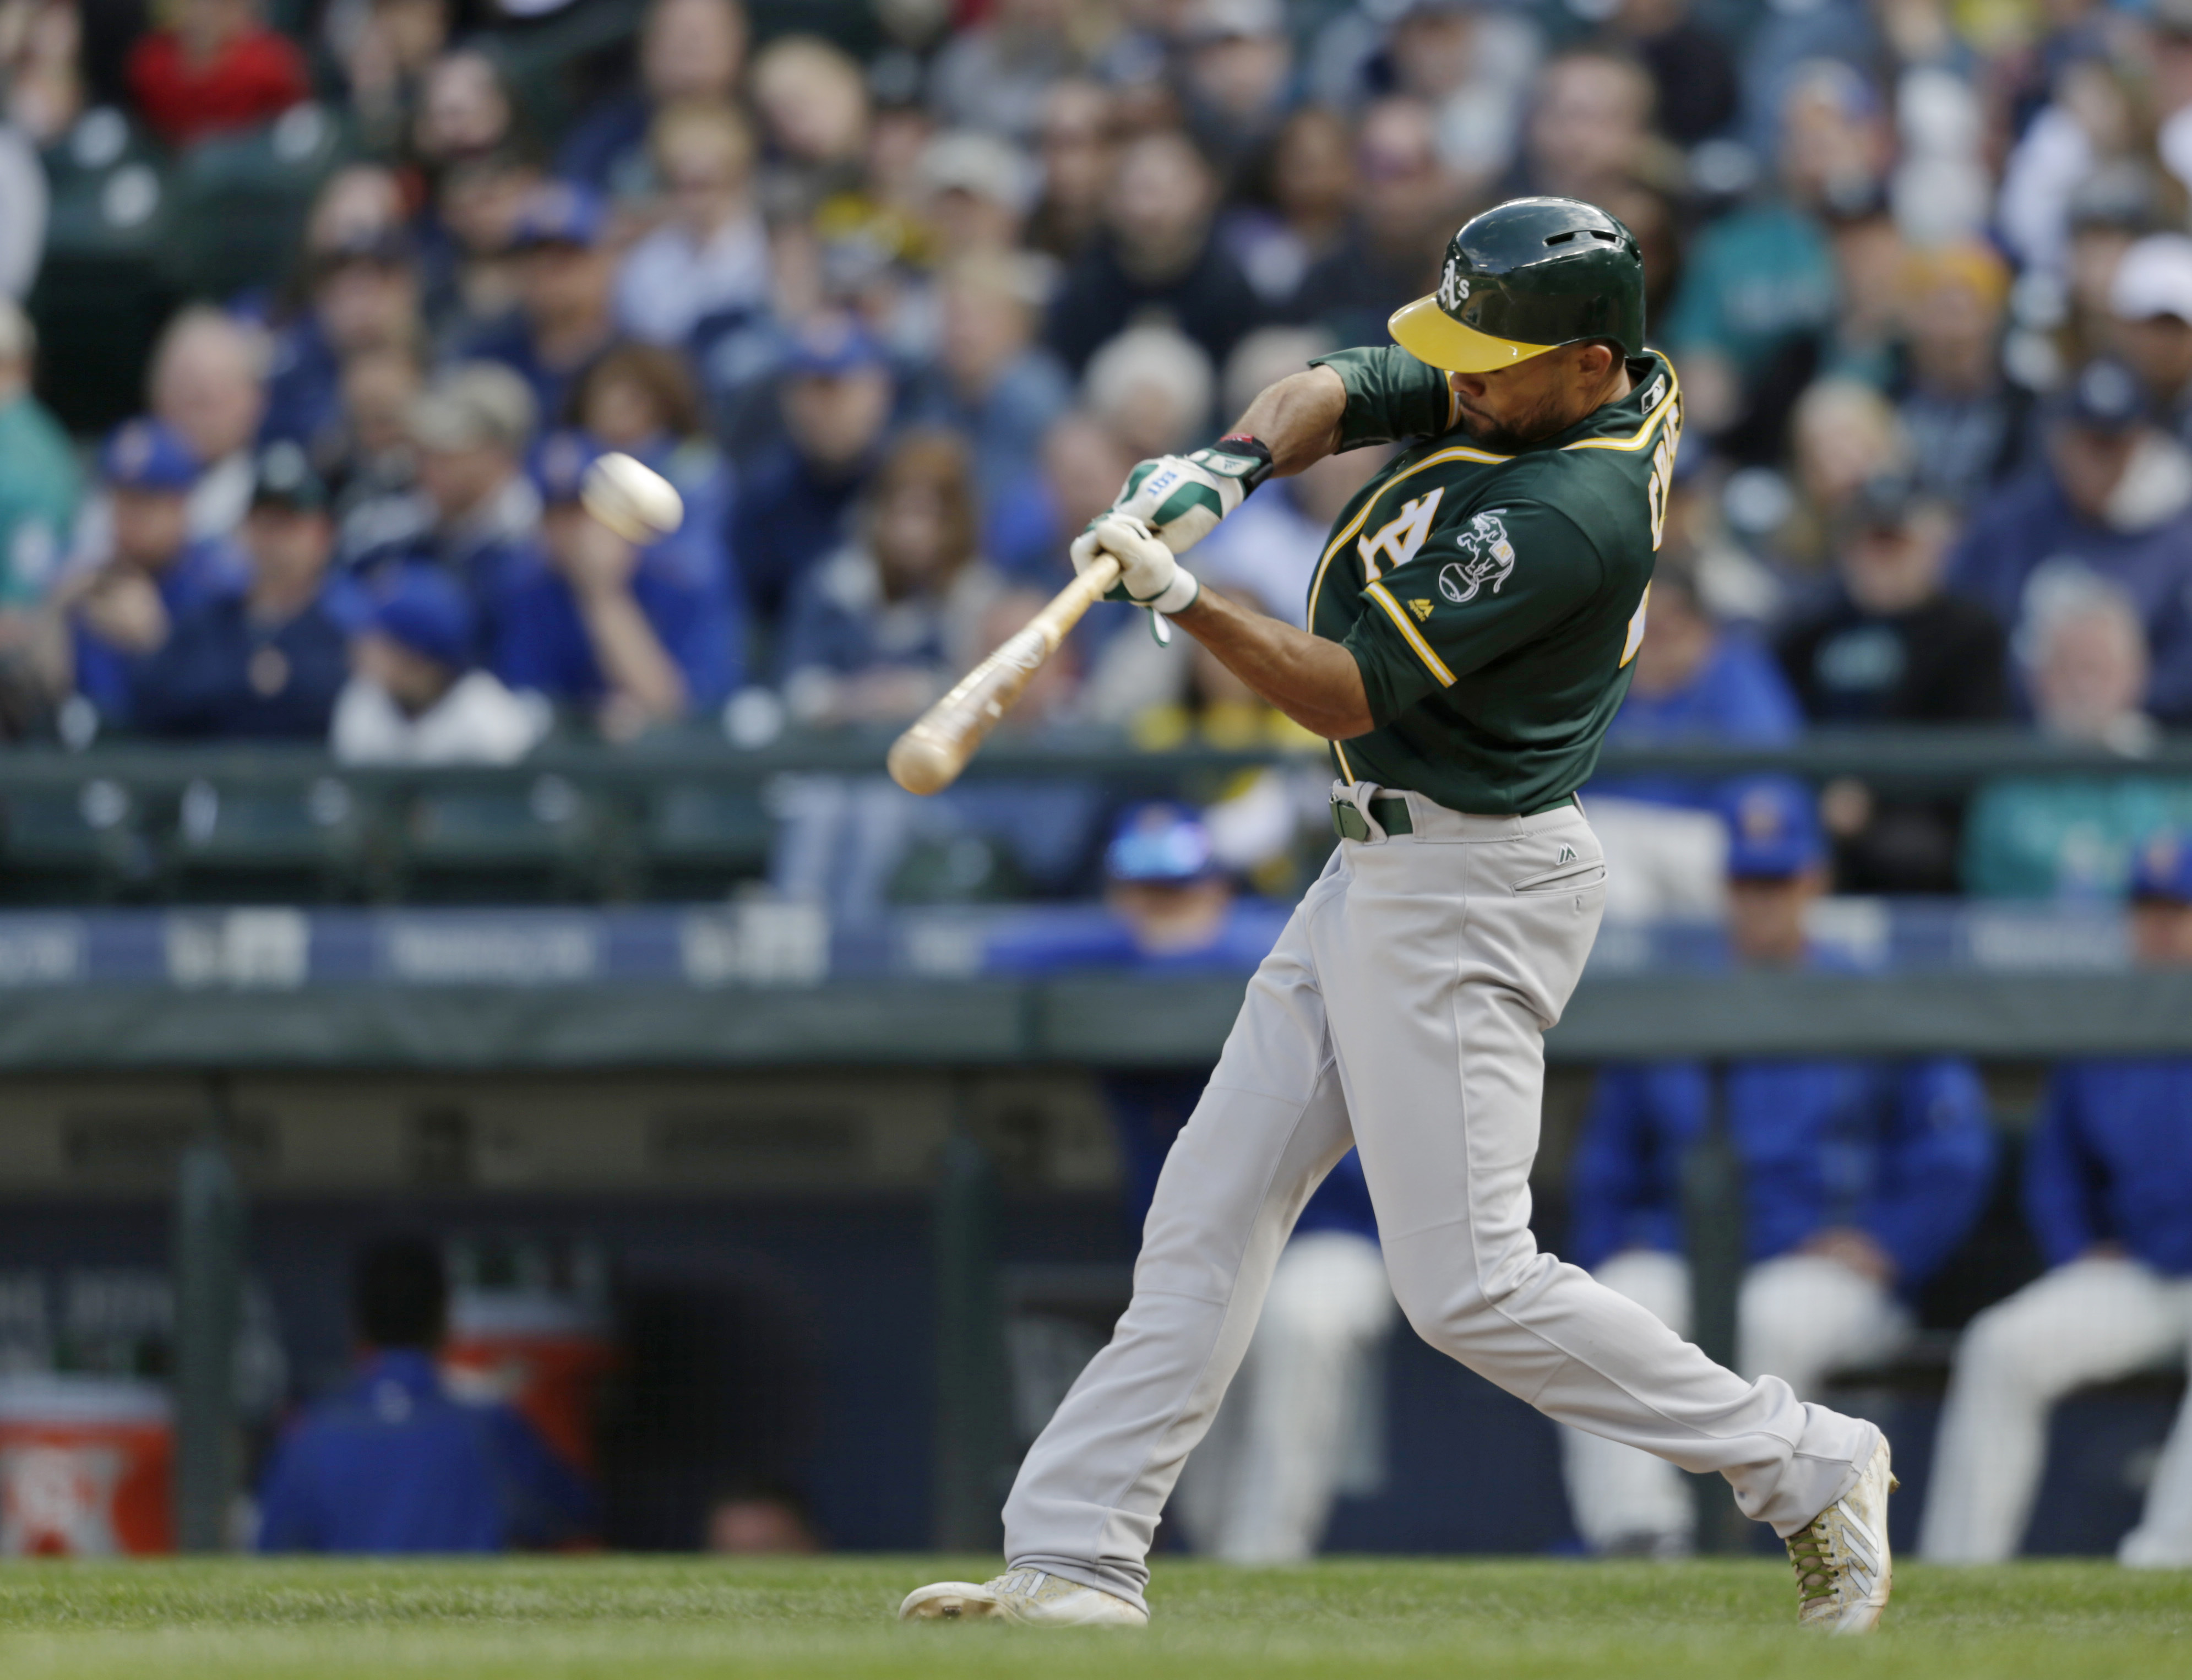 Oakland Athletics' Coco Crisp hits a solo home run on a pitch from Seattle Mariners' Nick Vincent during the 10th inning of a baseball game on Sunday, April 10, 2016, in Seattle. (AP Photo/John Froschauer)